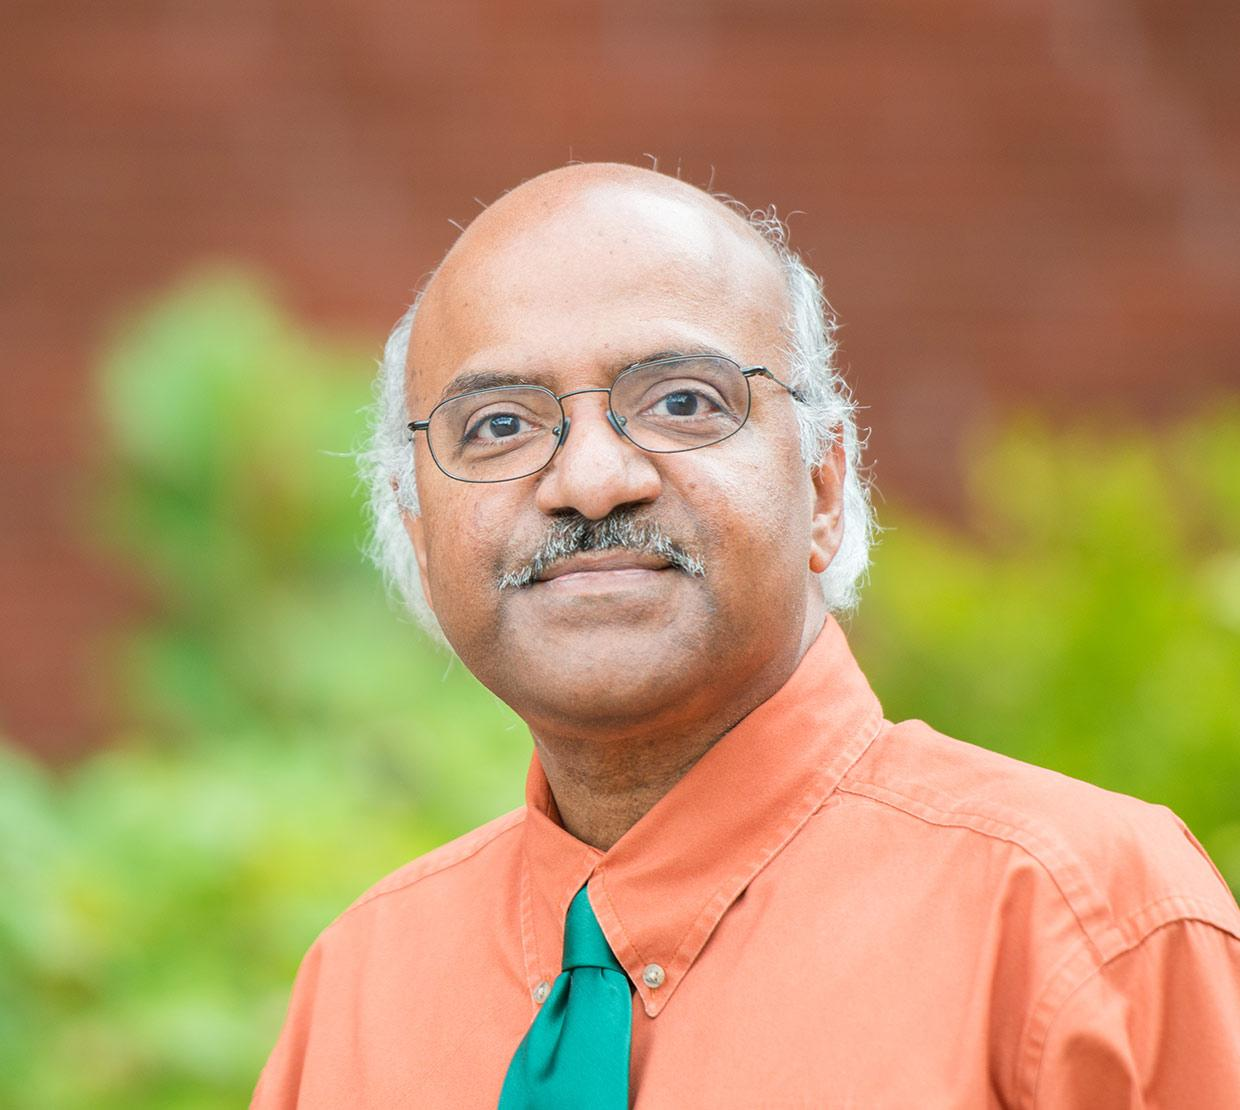 Sastry Pantula standing in front of shrubbery and brick wall